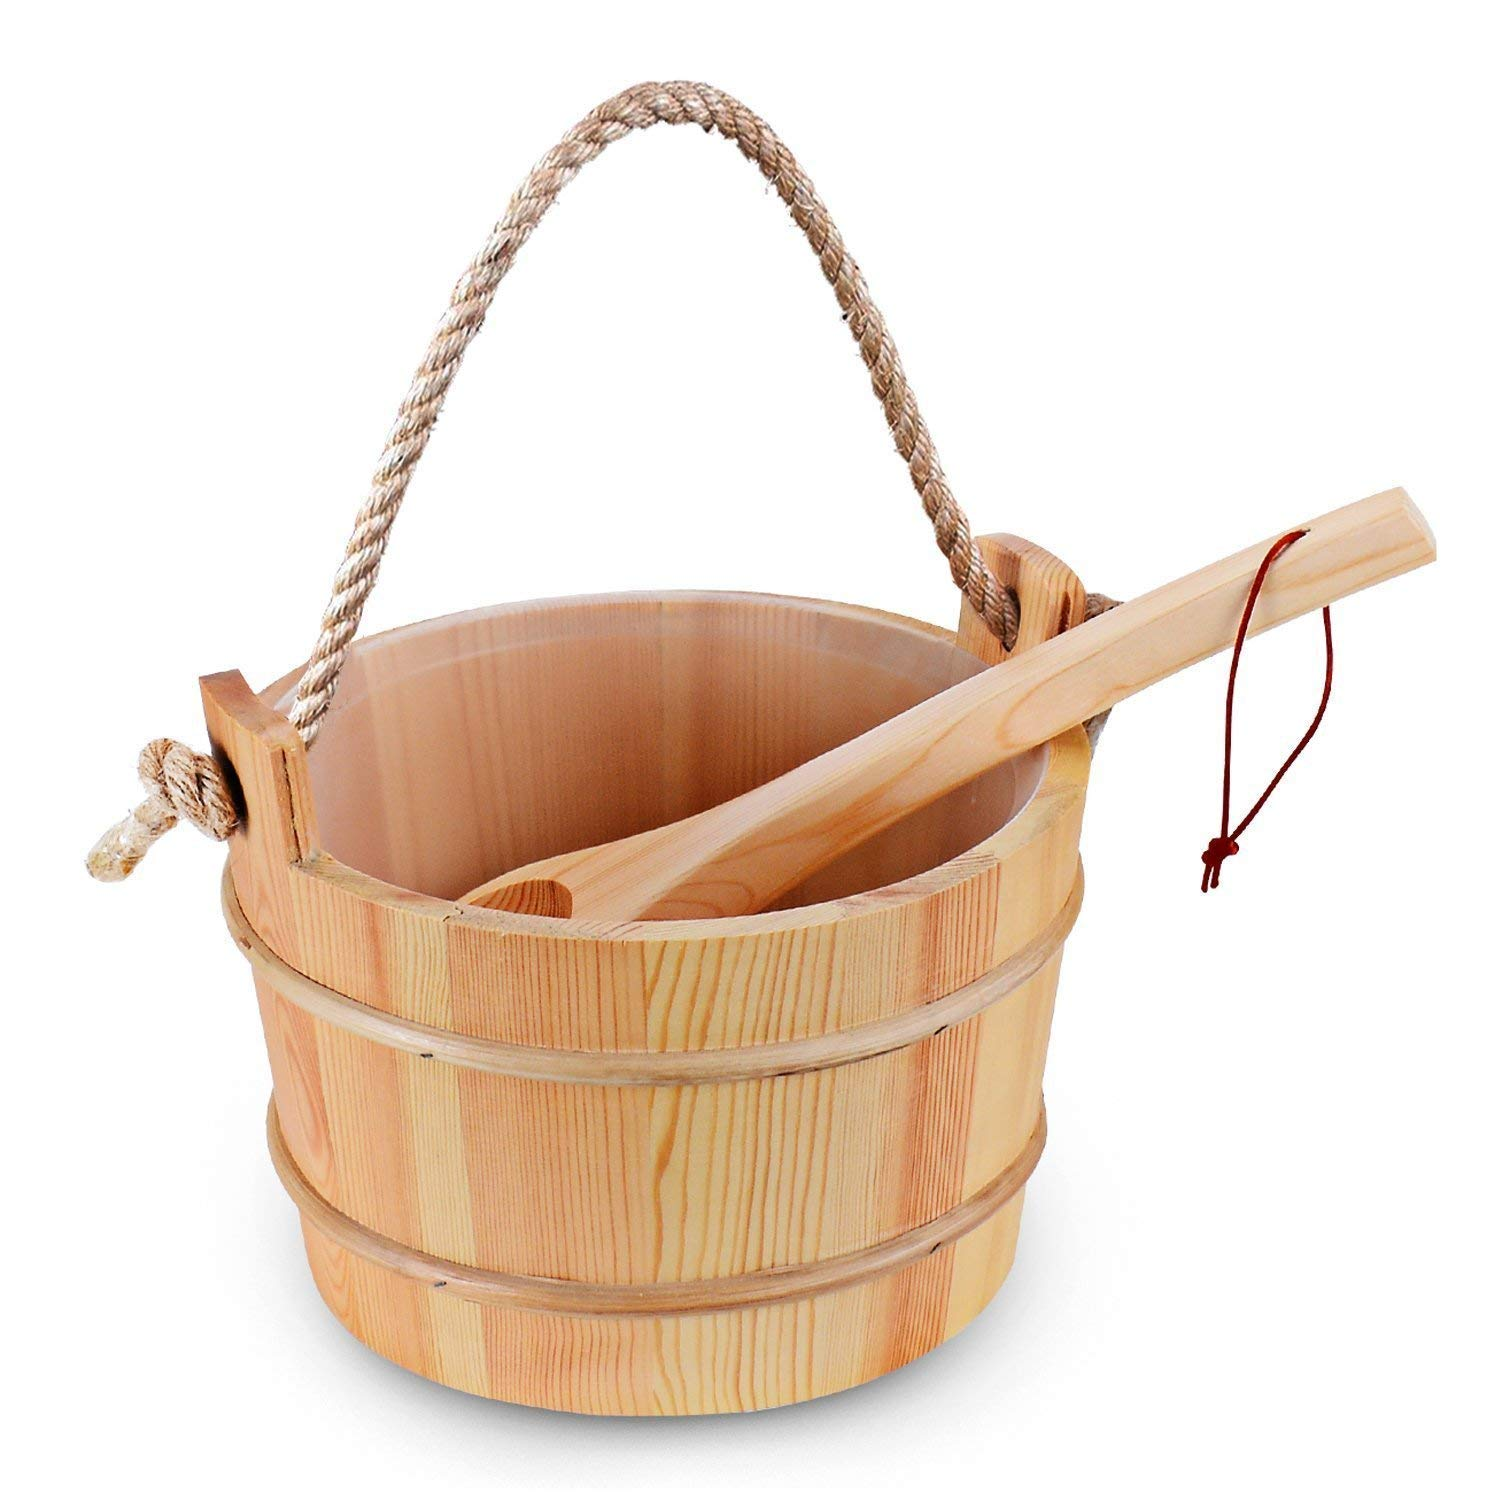 Bestnewie Sauna Bucket with Ladle Handmade Wooden Sauna Bucket Sauna Spa Accessory - 5 Liter (1.3 Gallon) Sauna Bucket by Bestnewie